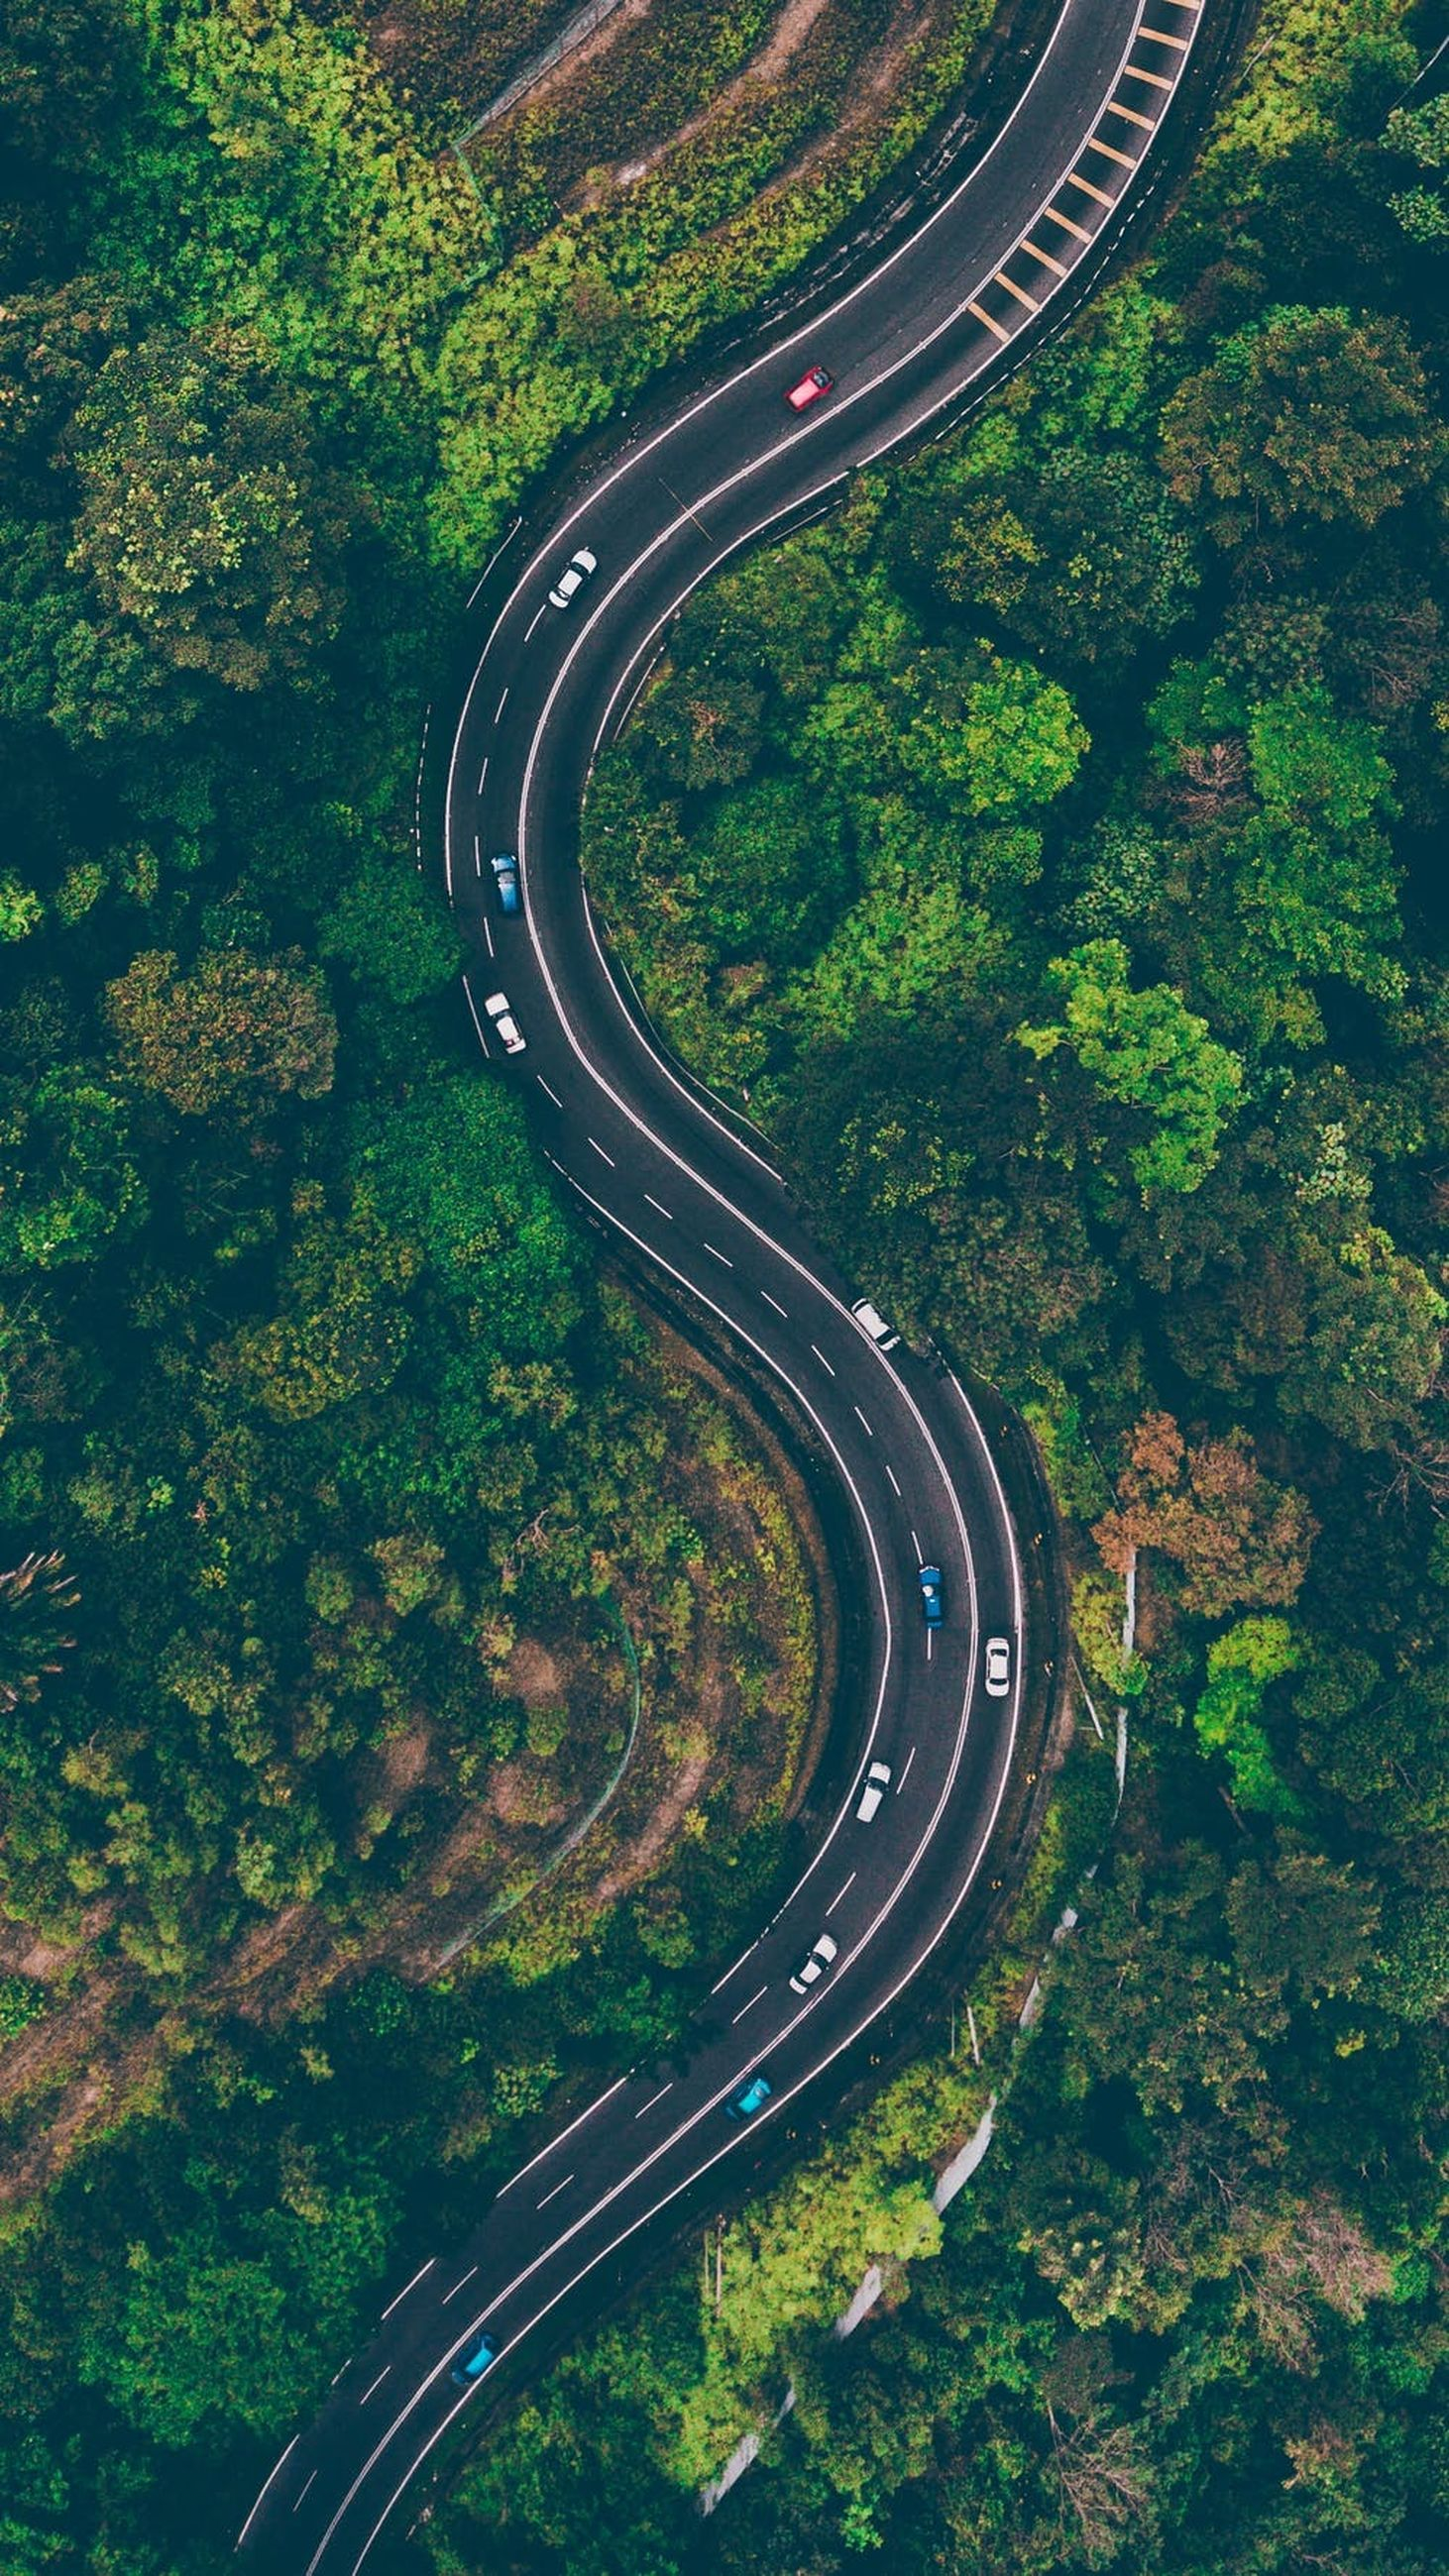 transportation, road, curve, mode of transportation, plant, high angle view, tree, nature, highway, no people, aerial view, car, day, connection, green color, land vehicle, motor vehicle, direction, outdoors, city, multiple lane highway